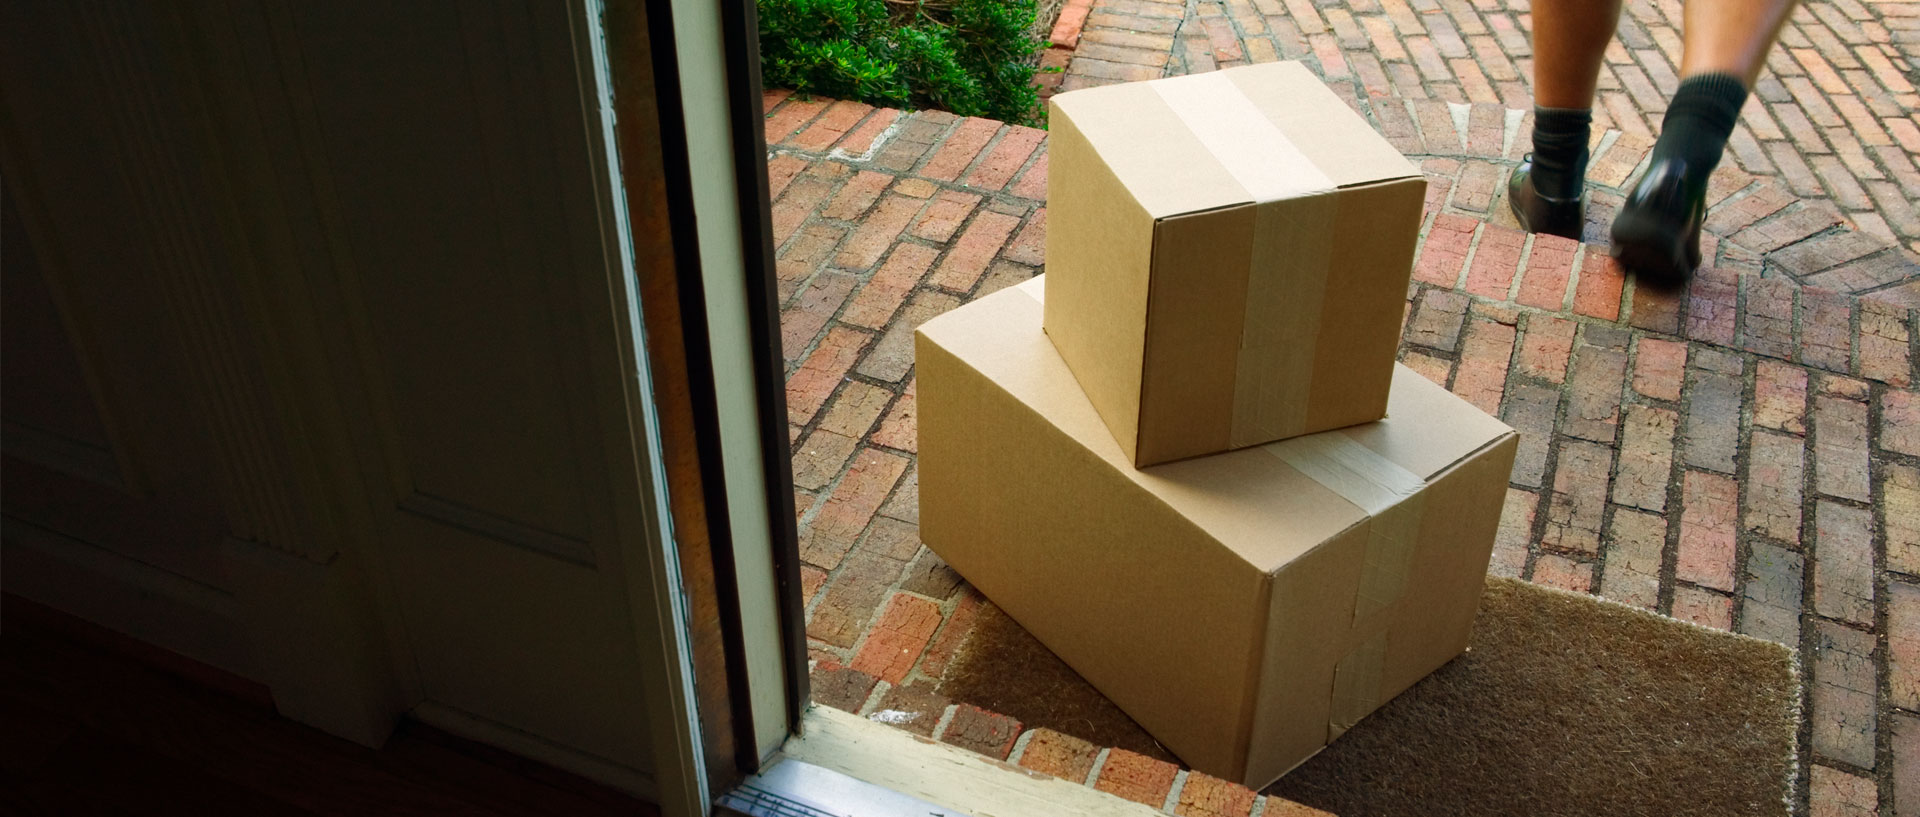 How To Avoid Holiday Package Theft At Home Consumer Reports